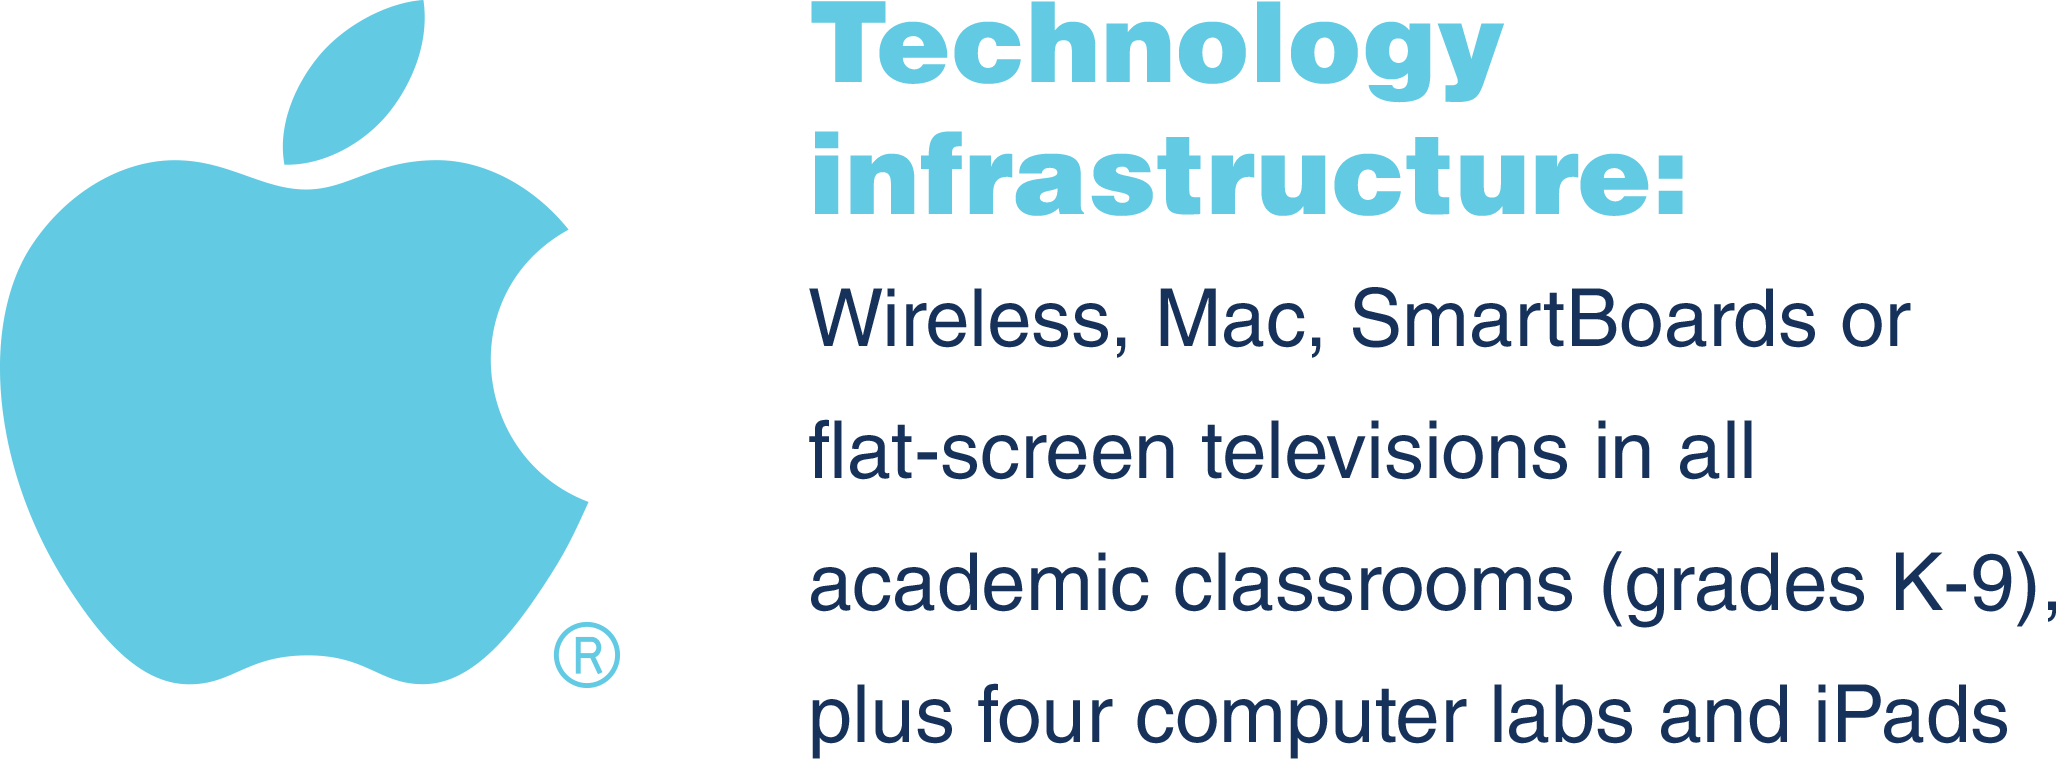 Technology infrastructure: Wireless, Mac, SmartBoards or flat-screen televisions in all academic classrooms (grades K-9), plus four computer labs and iPads